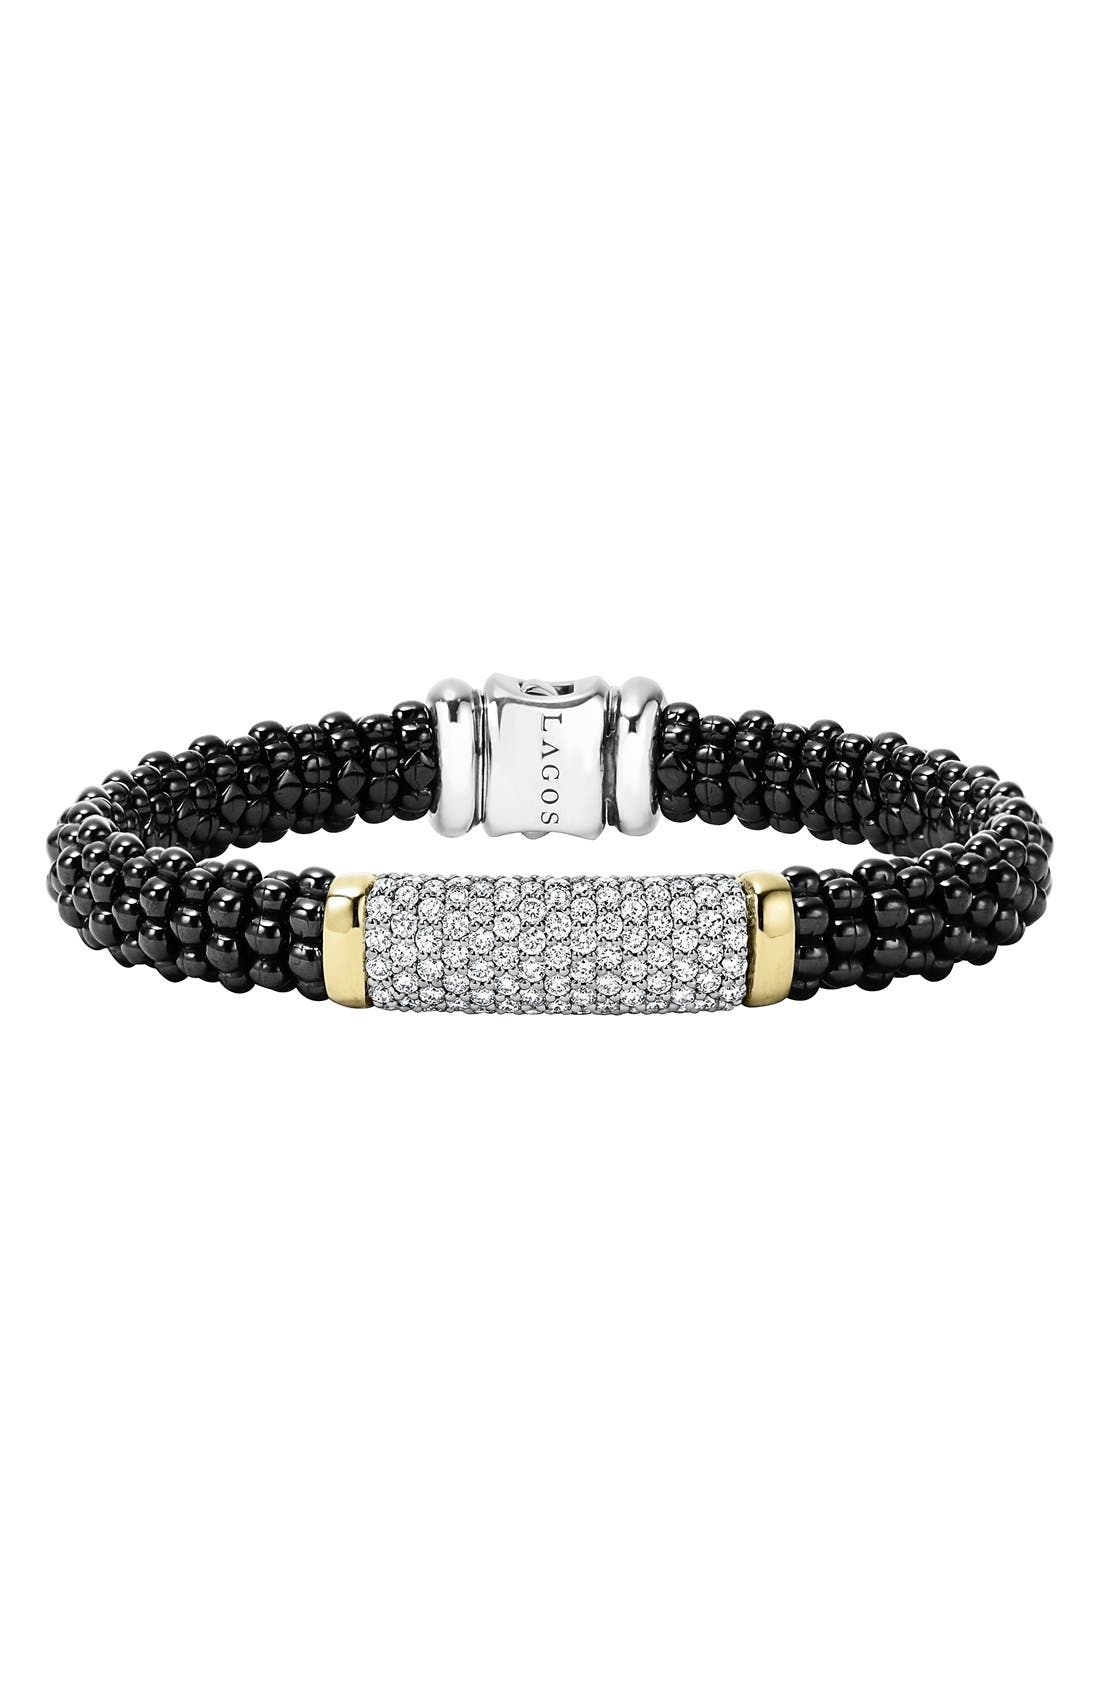 'Black Caviar' Diamond Rope Bracelet,                             Main thumbnail 1, color,                             BLACK CAVIAR/ GOLD